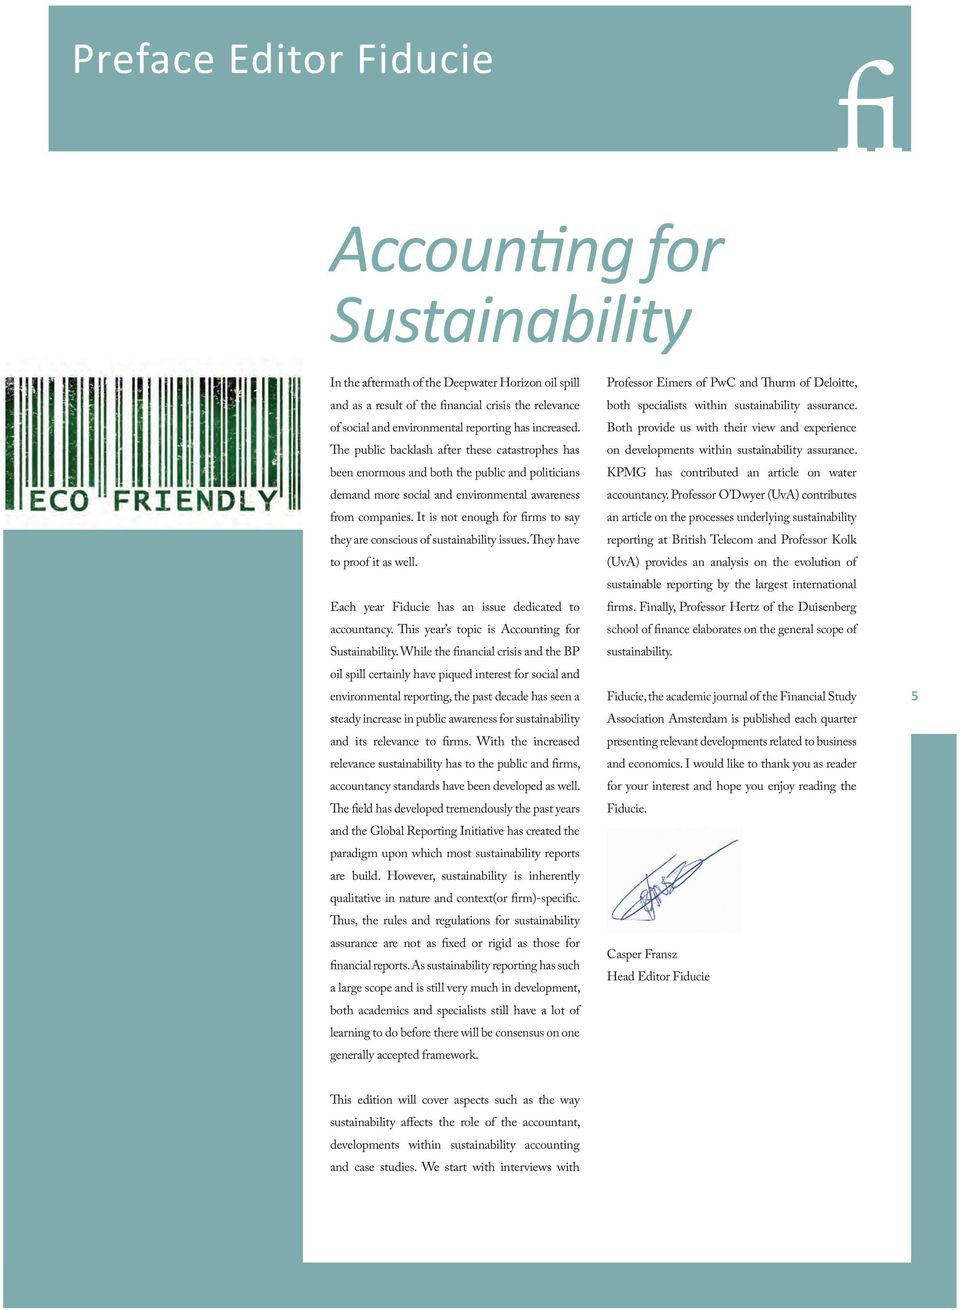 It is not enough for firms to say they are conscious of sustainability issues. They have to proof it as well. Each year Fiducie has an issue dedicated to accountancy.